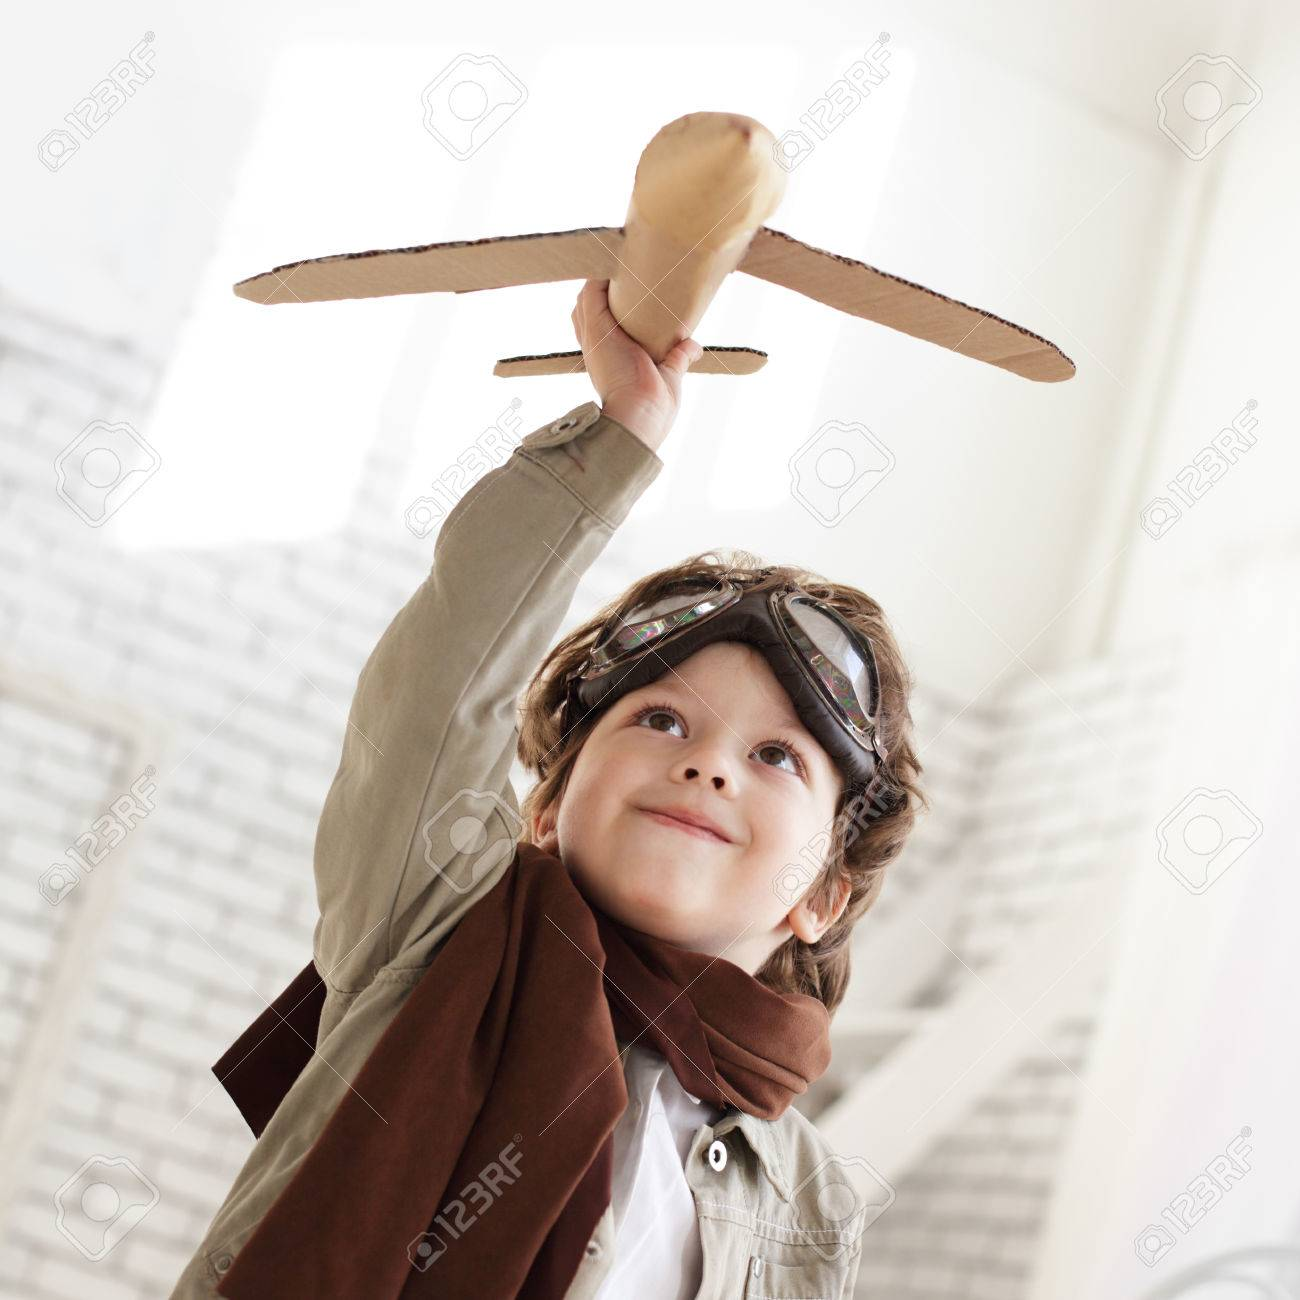 happy boy with airplane in hand - 26035359